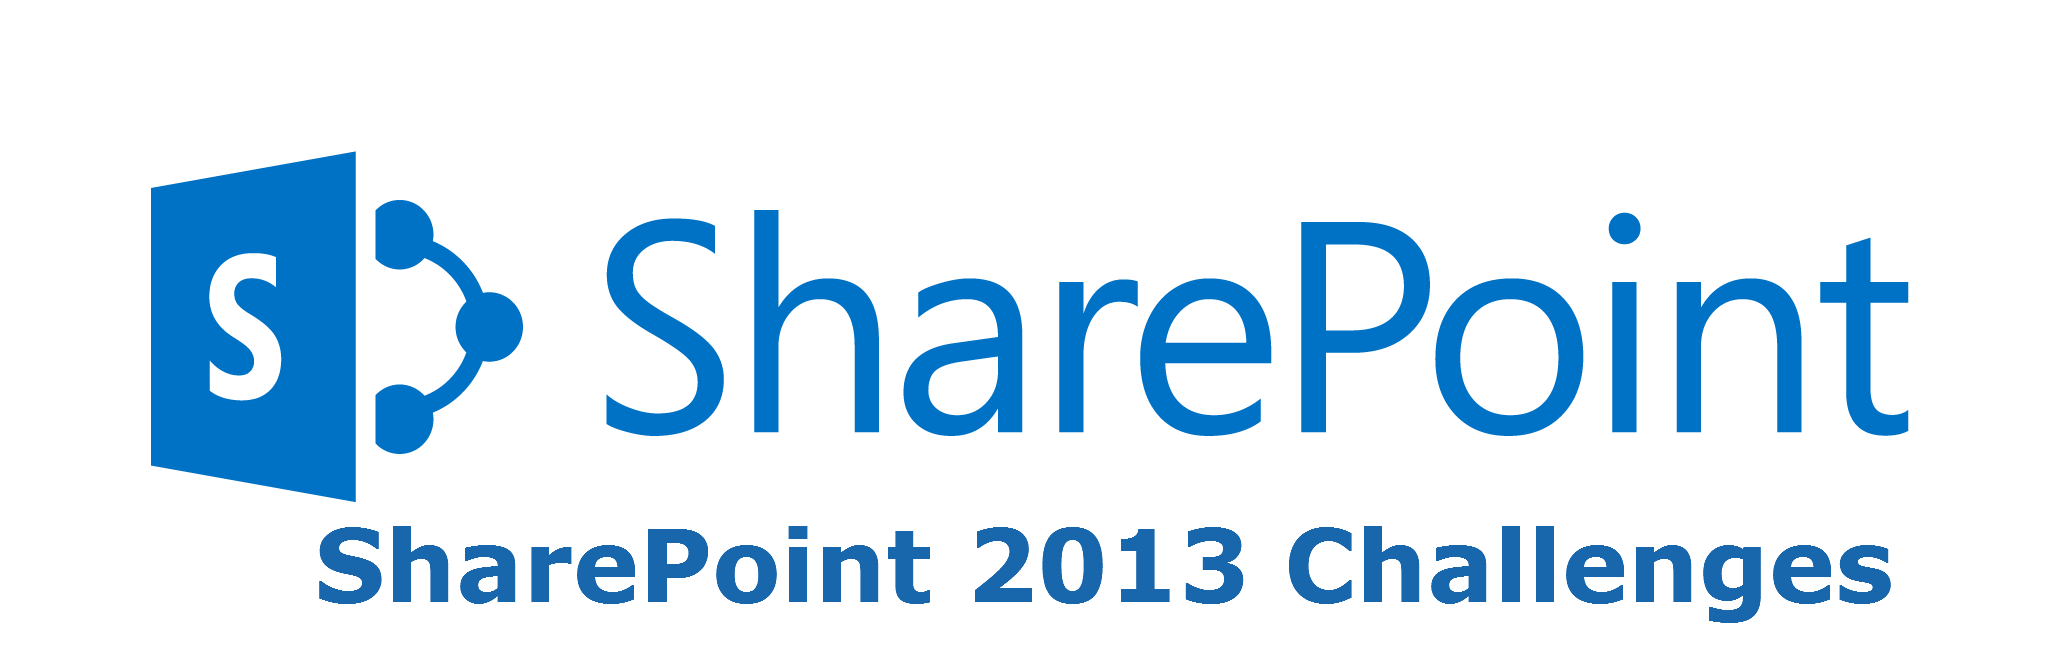 SharePoint 2013 Challenges with On Premise Set Up - Image 1